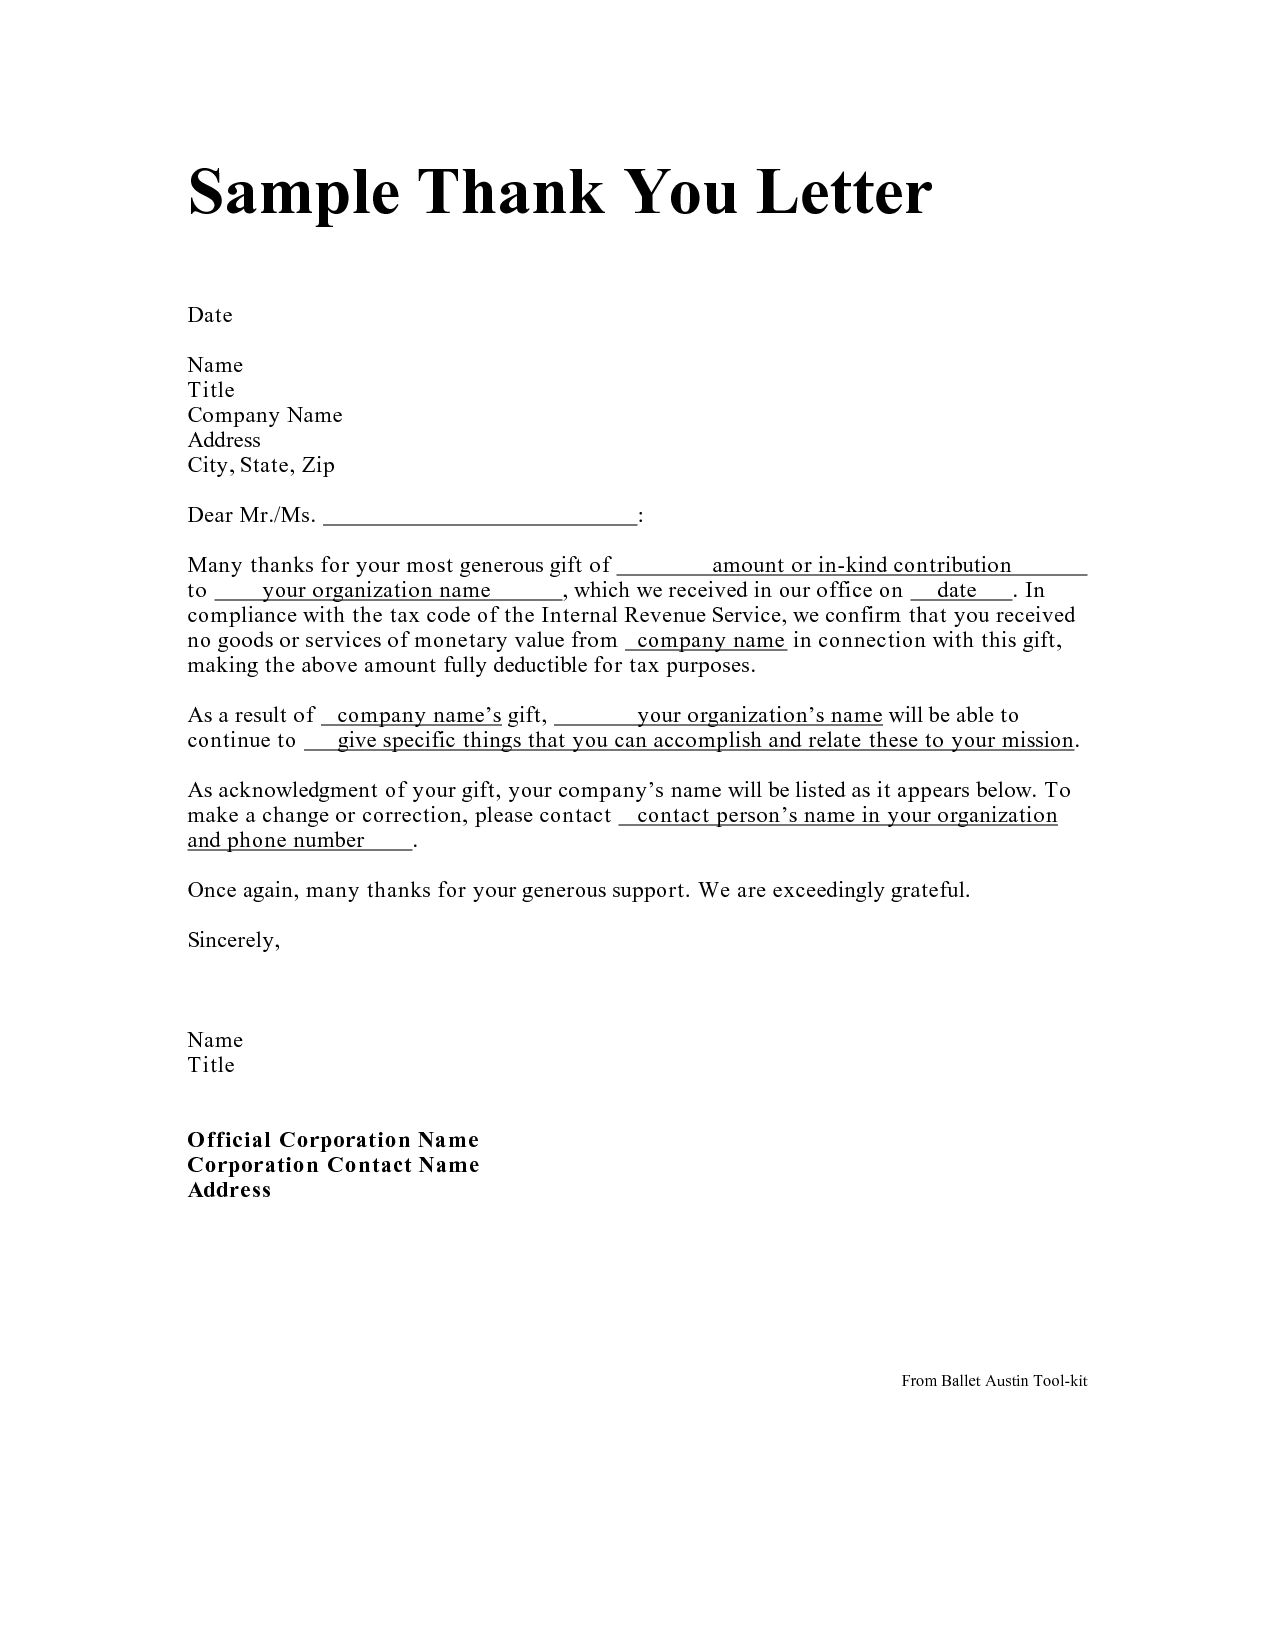 personal thank you letter - personal thank you letter samples